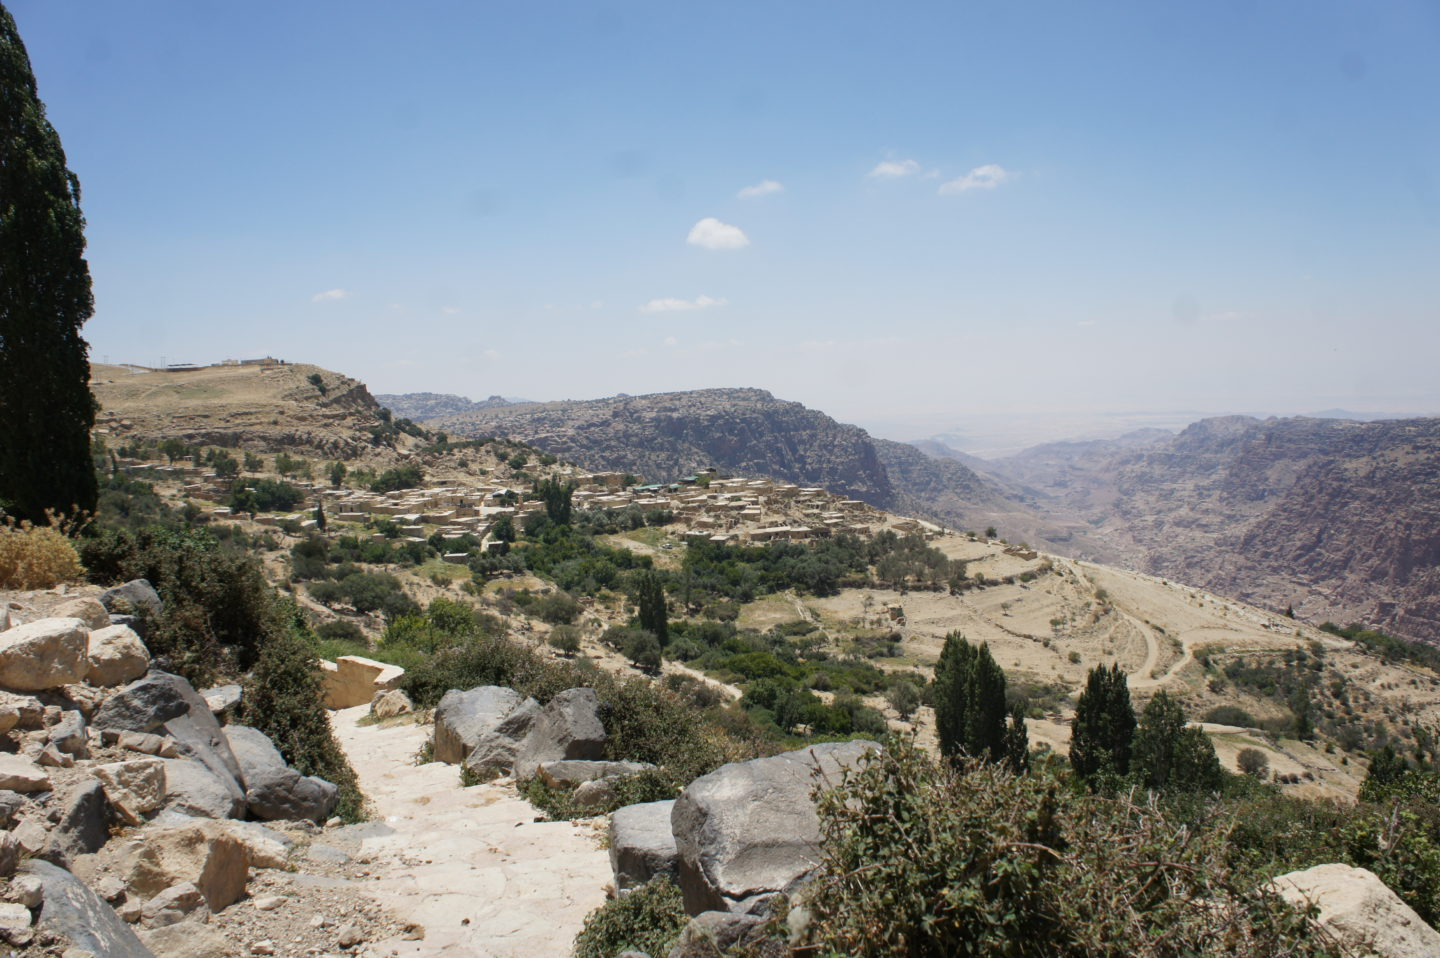 Mountain views and sustainable farming draw tourists to southern Jordan | The Switchers